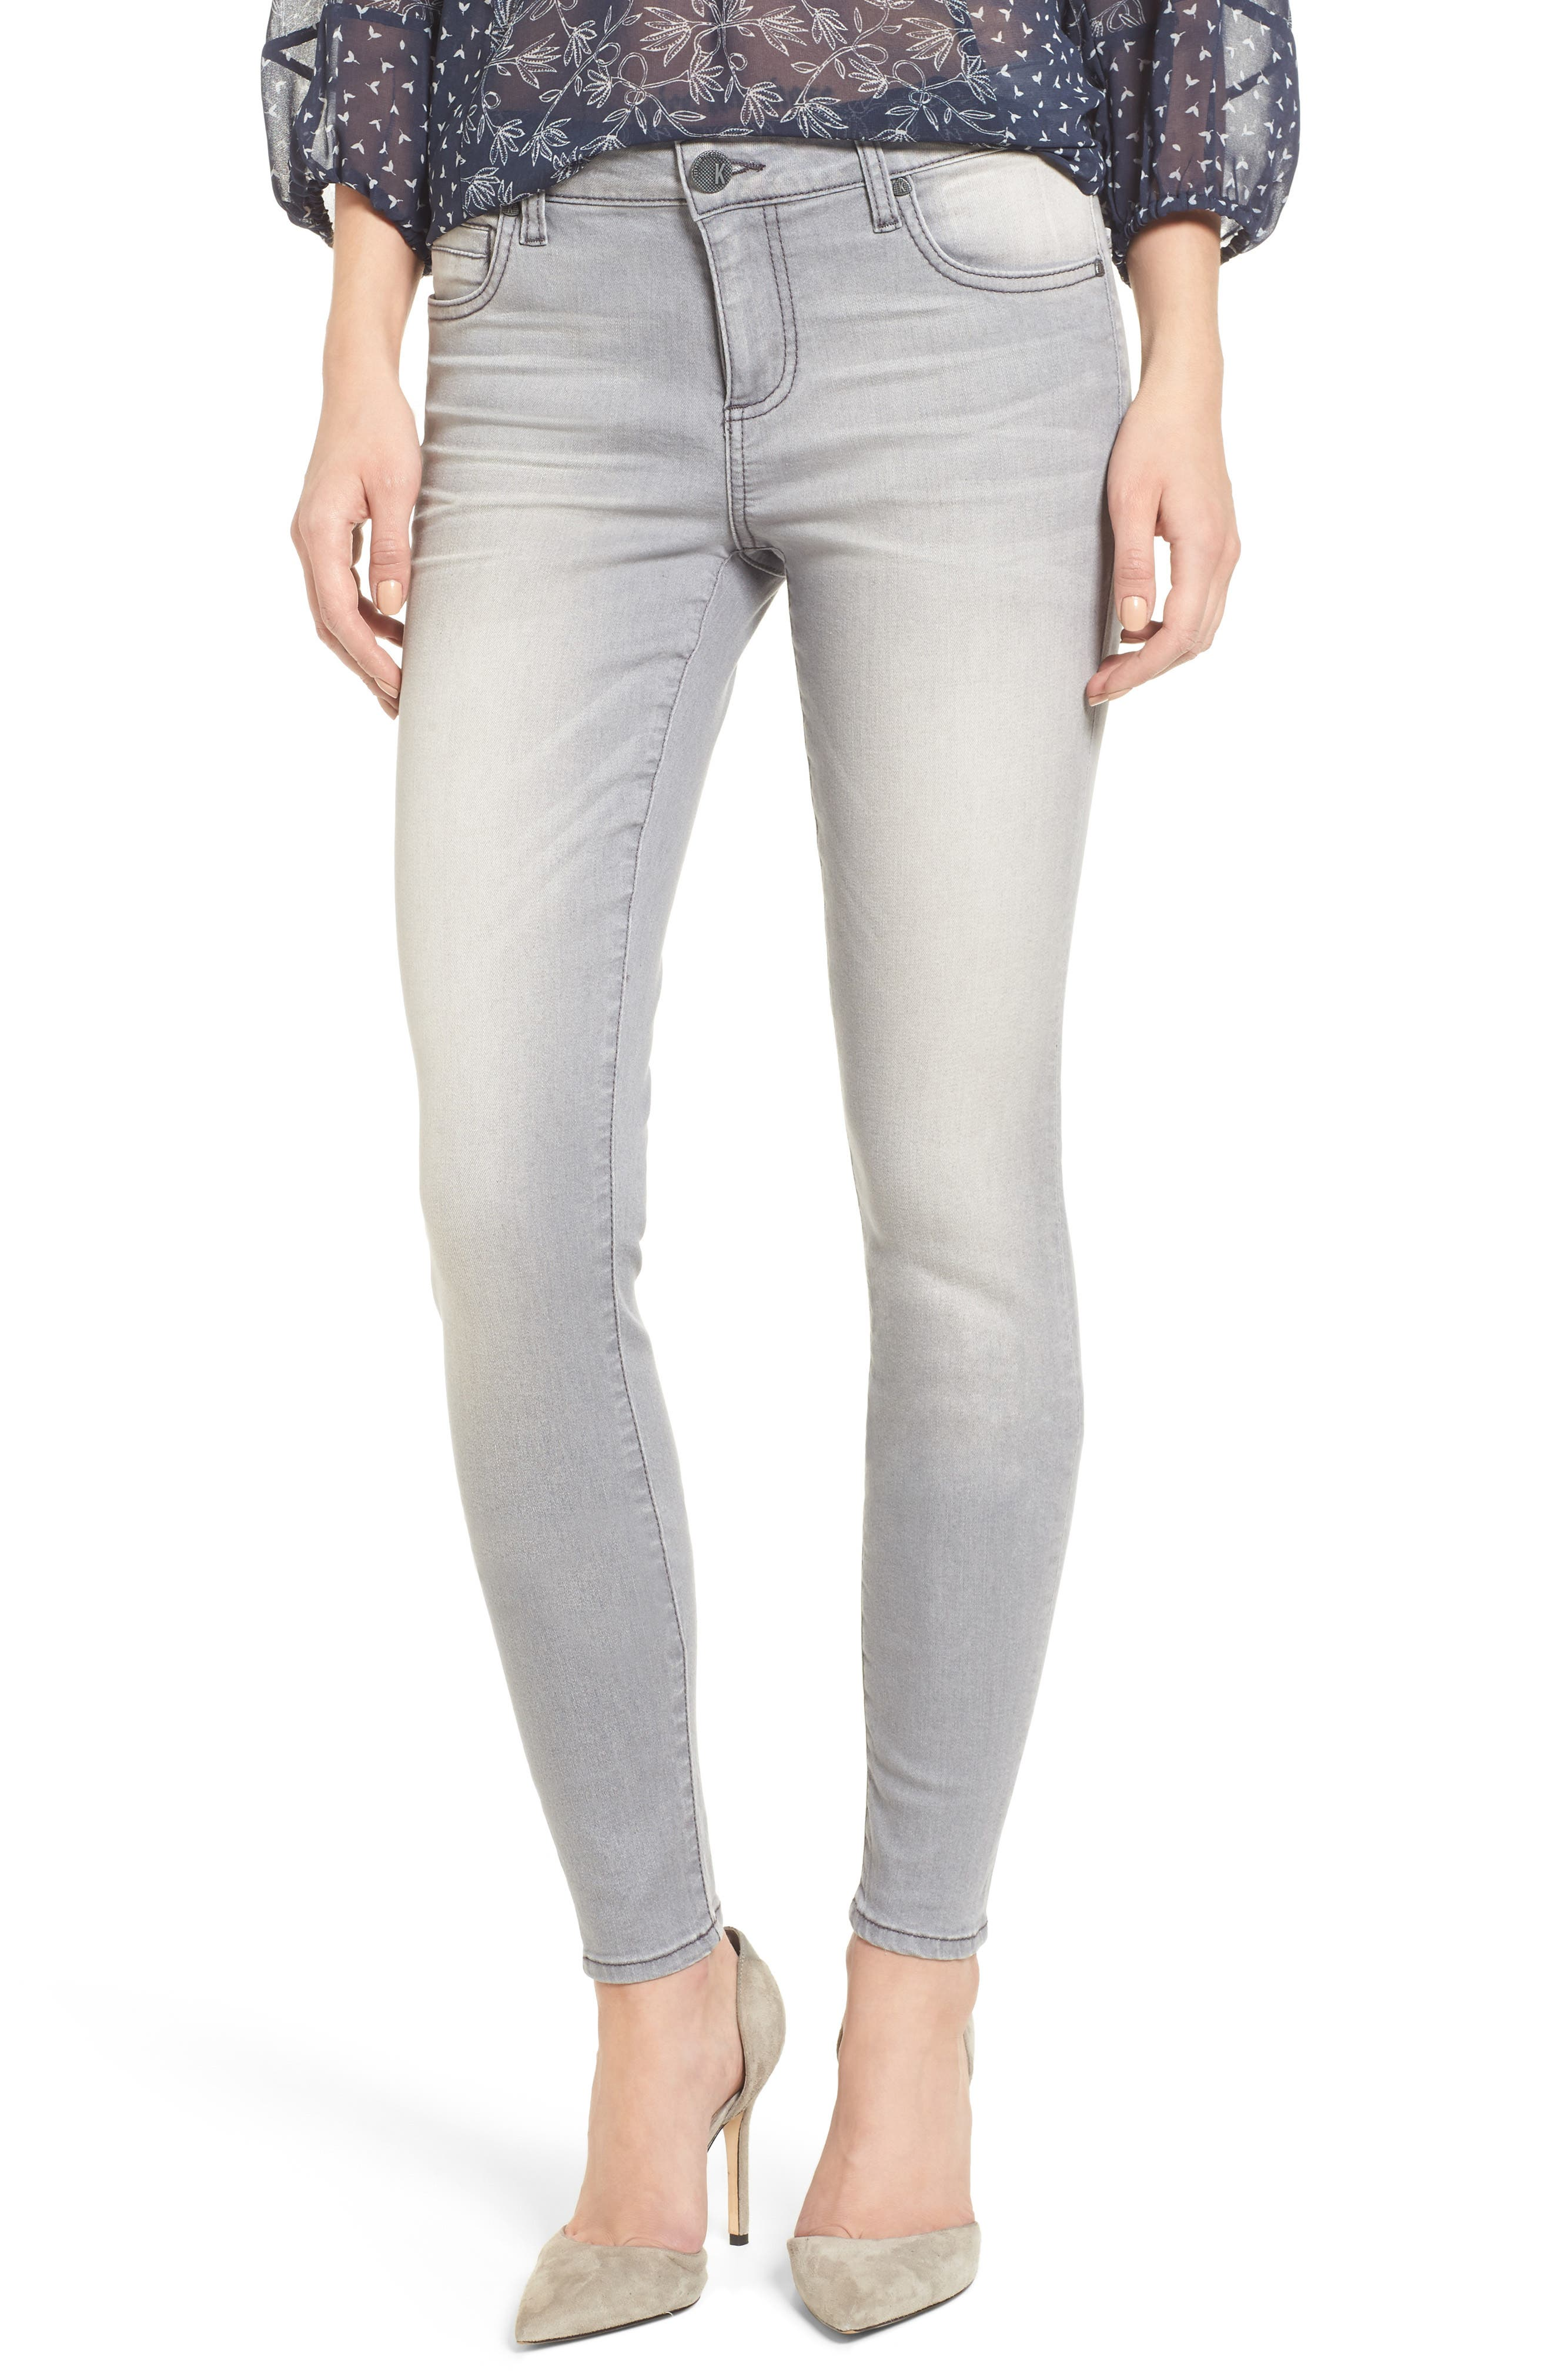 Kut from the Kloth Mia Skinny Jeans (Prevailed)